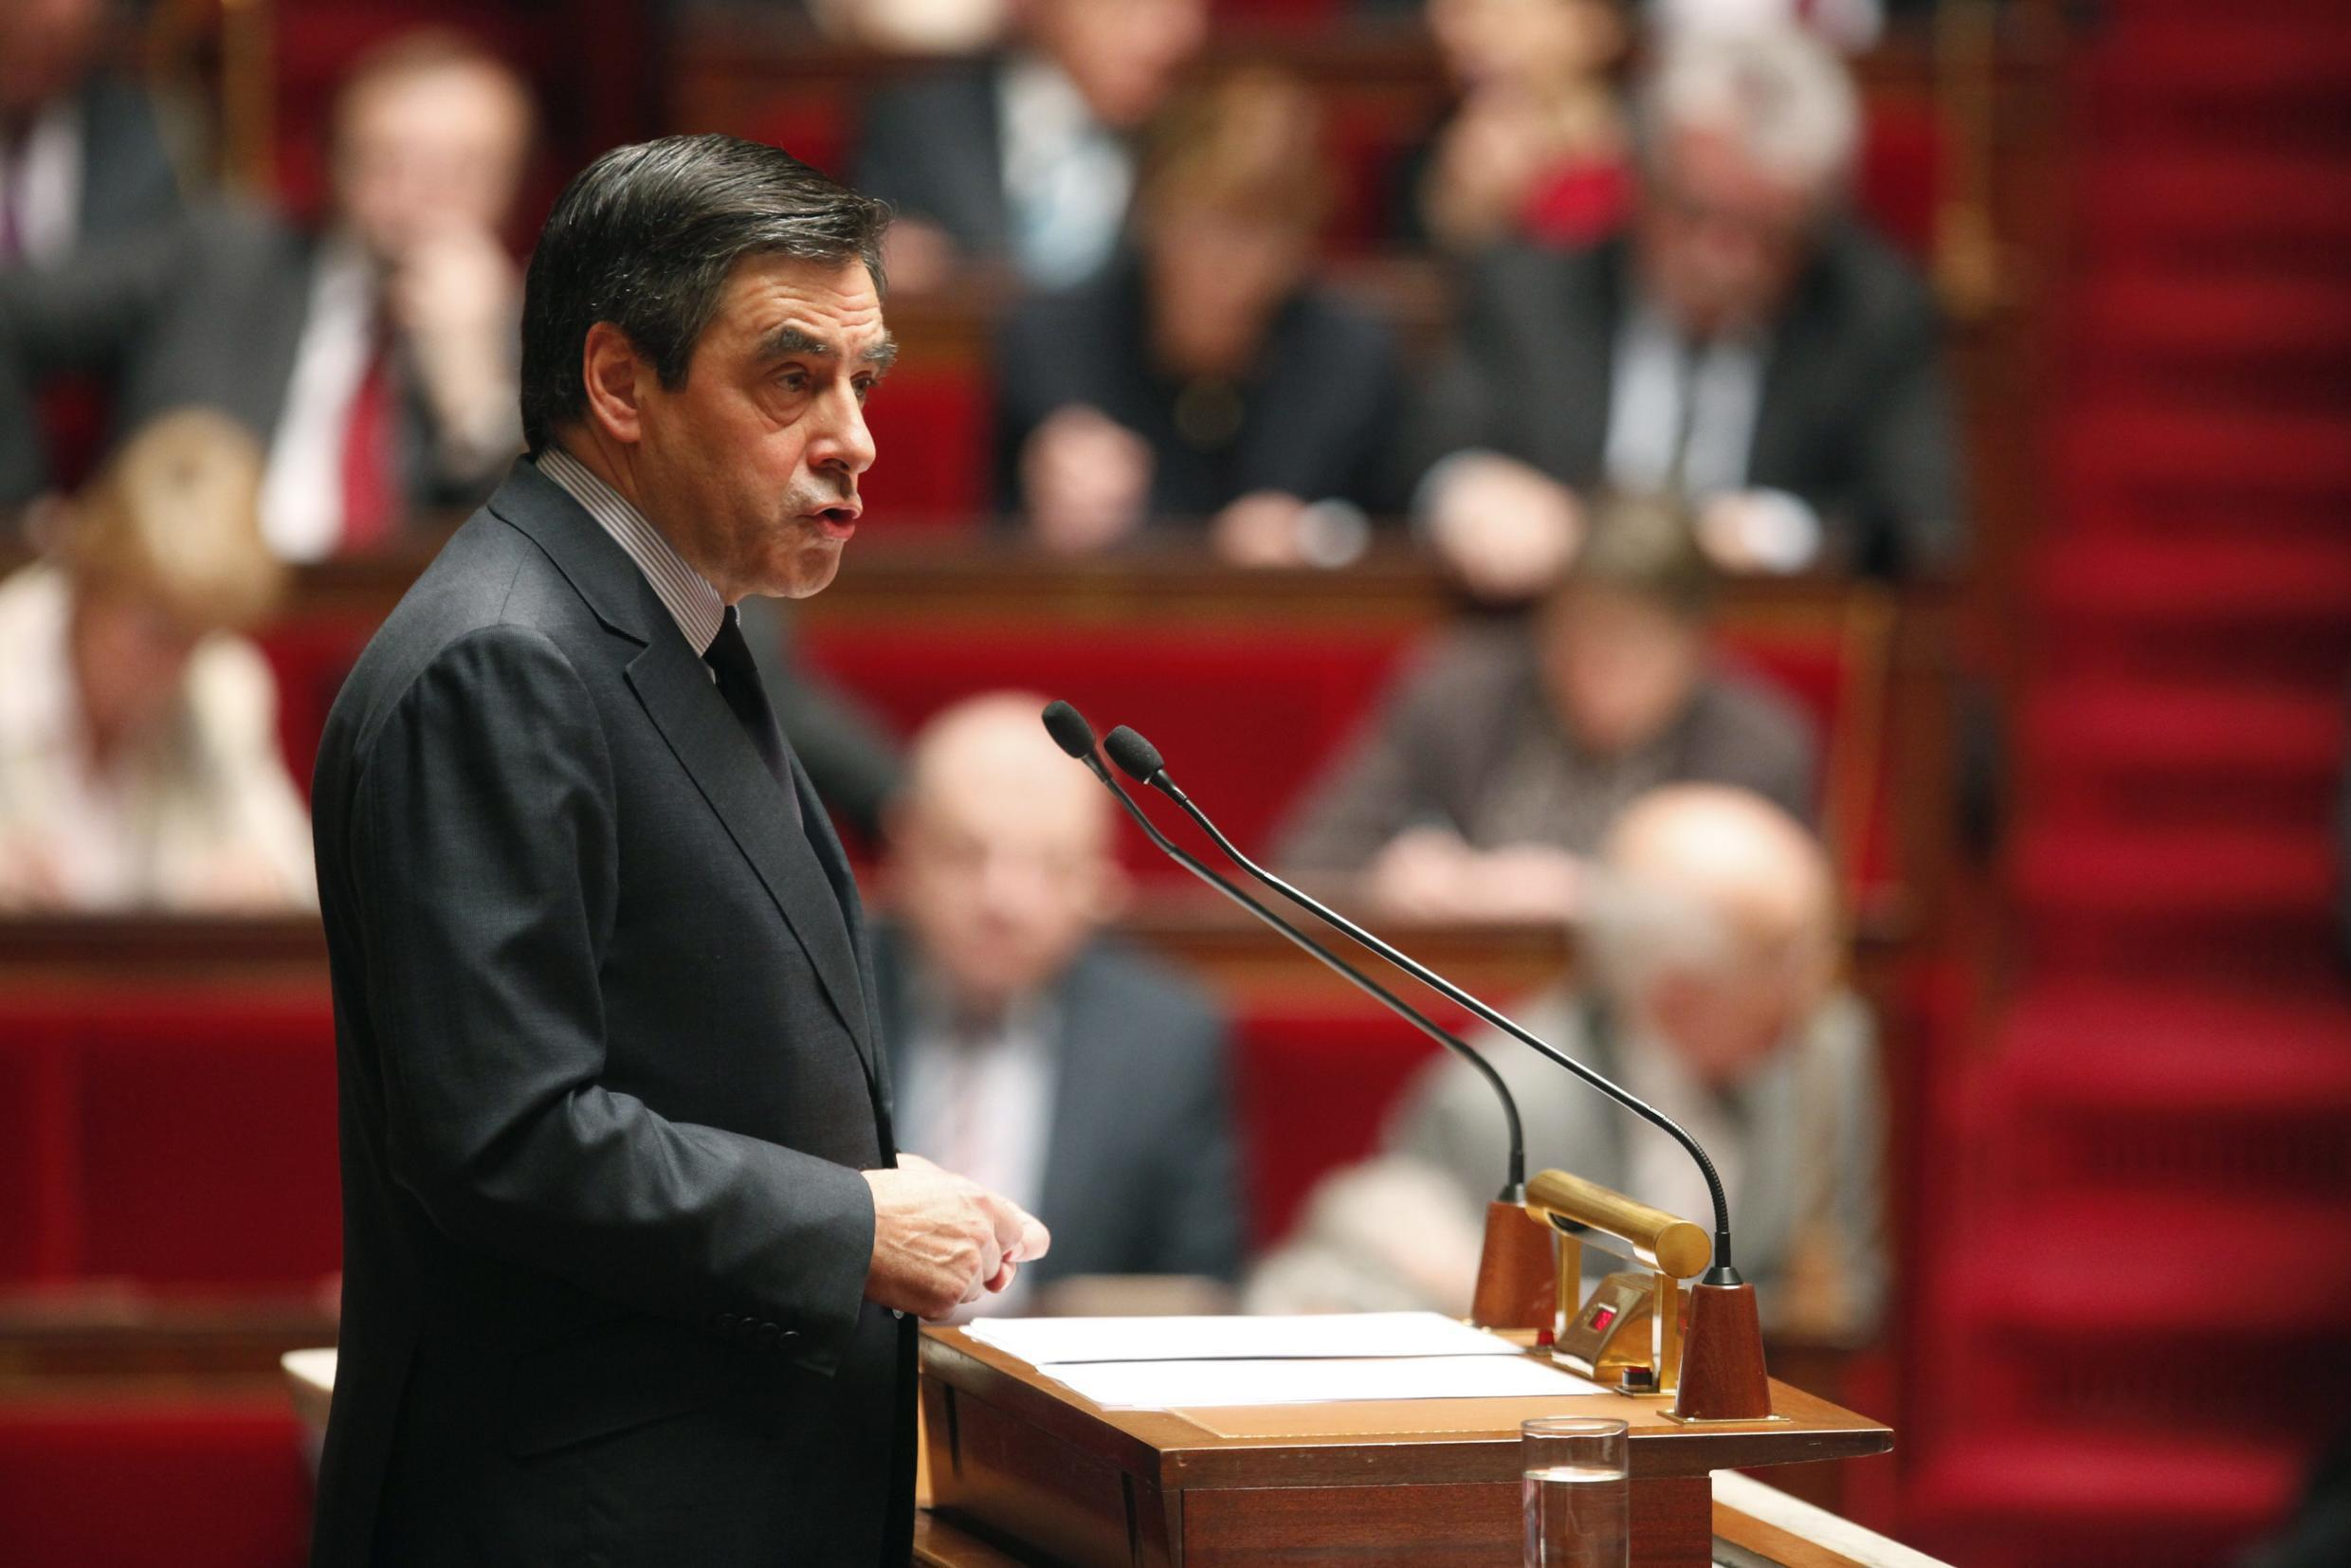 France's Prime Minister Francois Fillon delivers a speech during a debate on Libya at the National Assembly in Paris